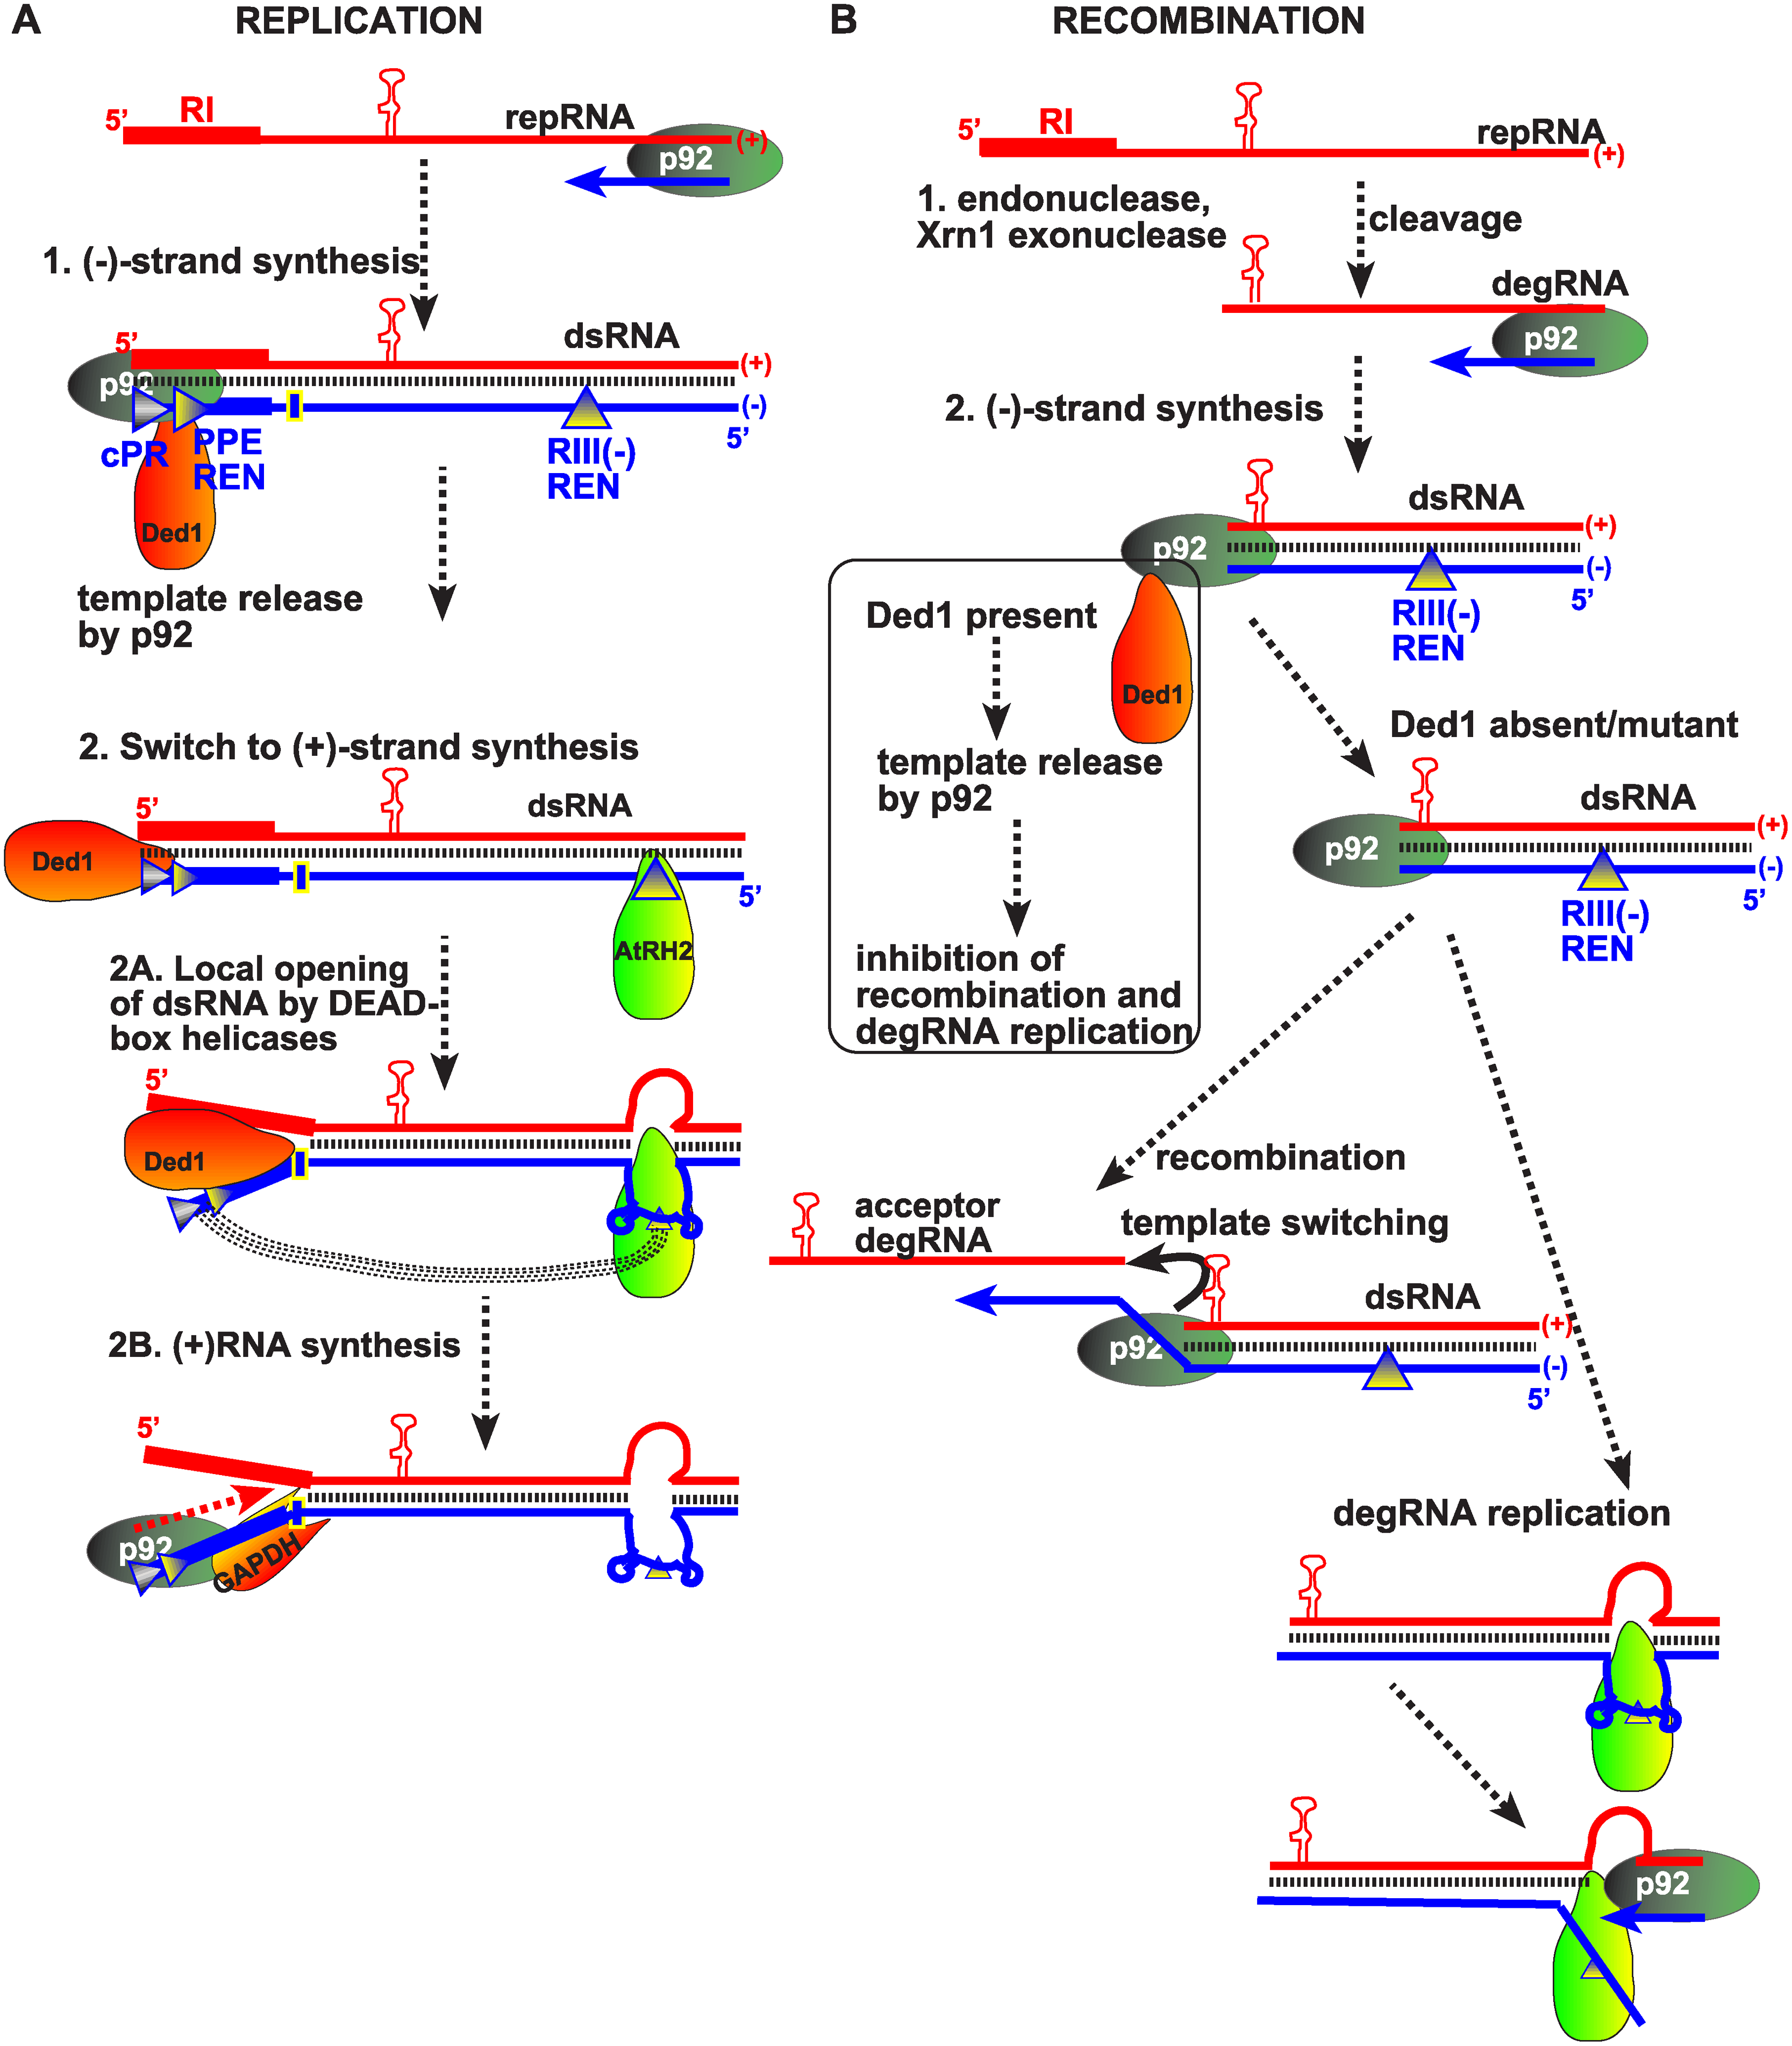 Models showing the functions of subverted cellular DEAD-box helicases in TBSV replication and viral RNA recombination.